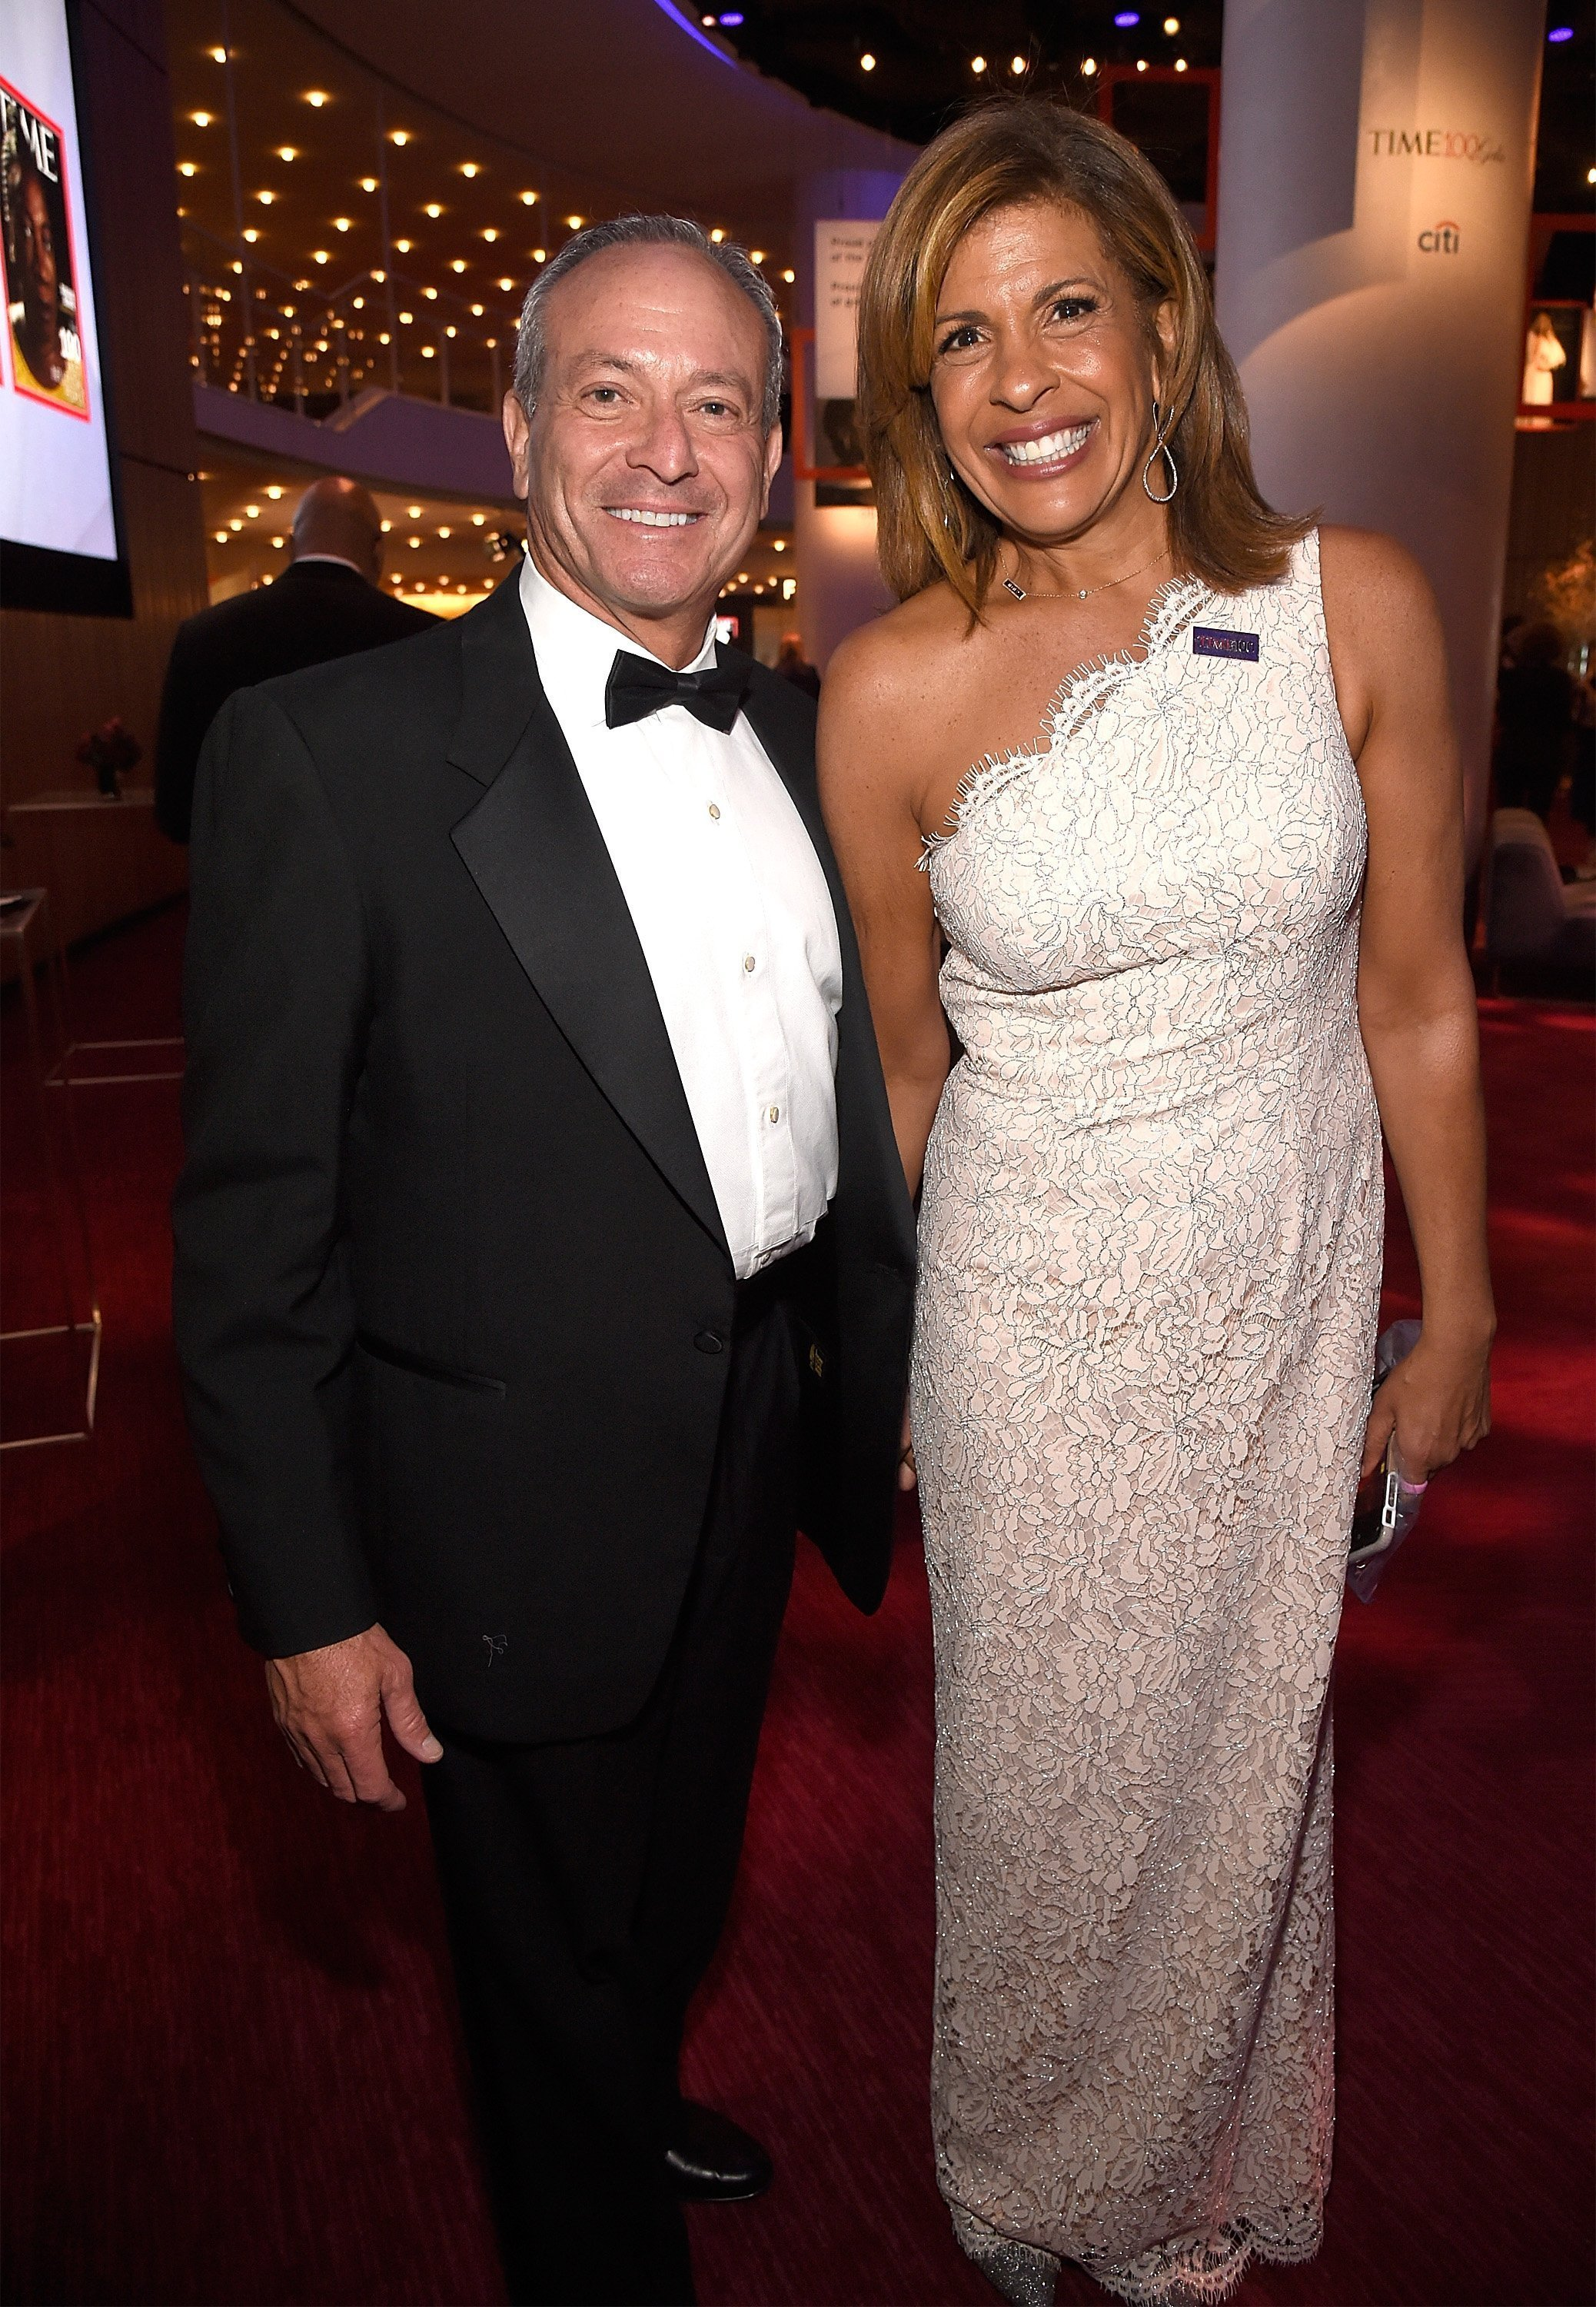 Joel Schiffman and Hoda Kotb attend the Time 100 Gala in New York City on April 24, 2018 | Photo: Getty images